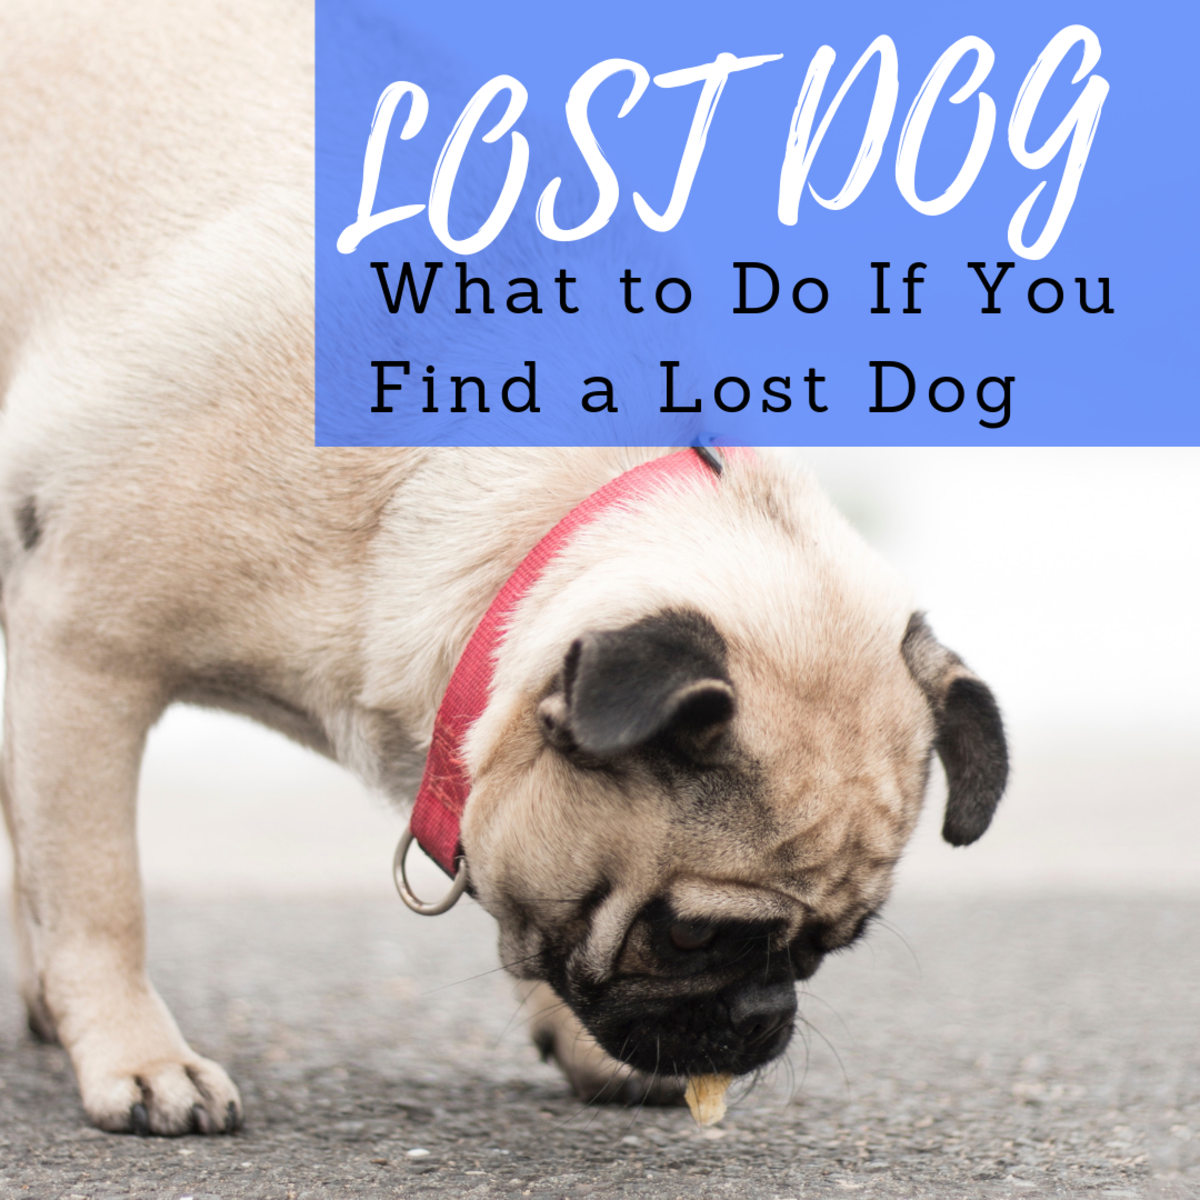 What to do if you find a lost dog.